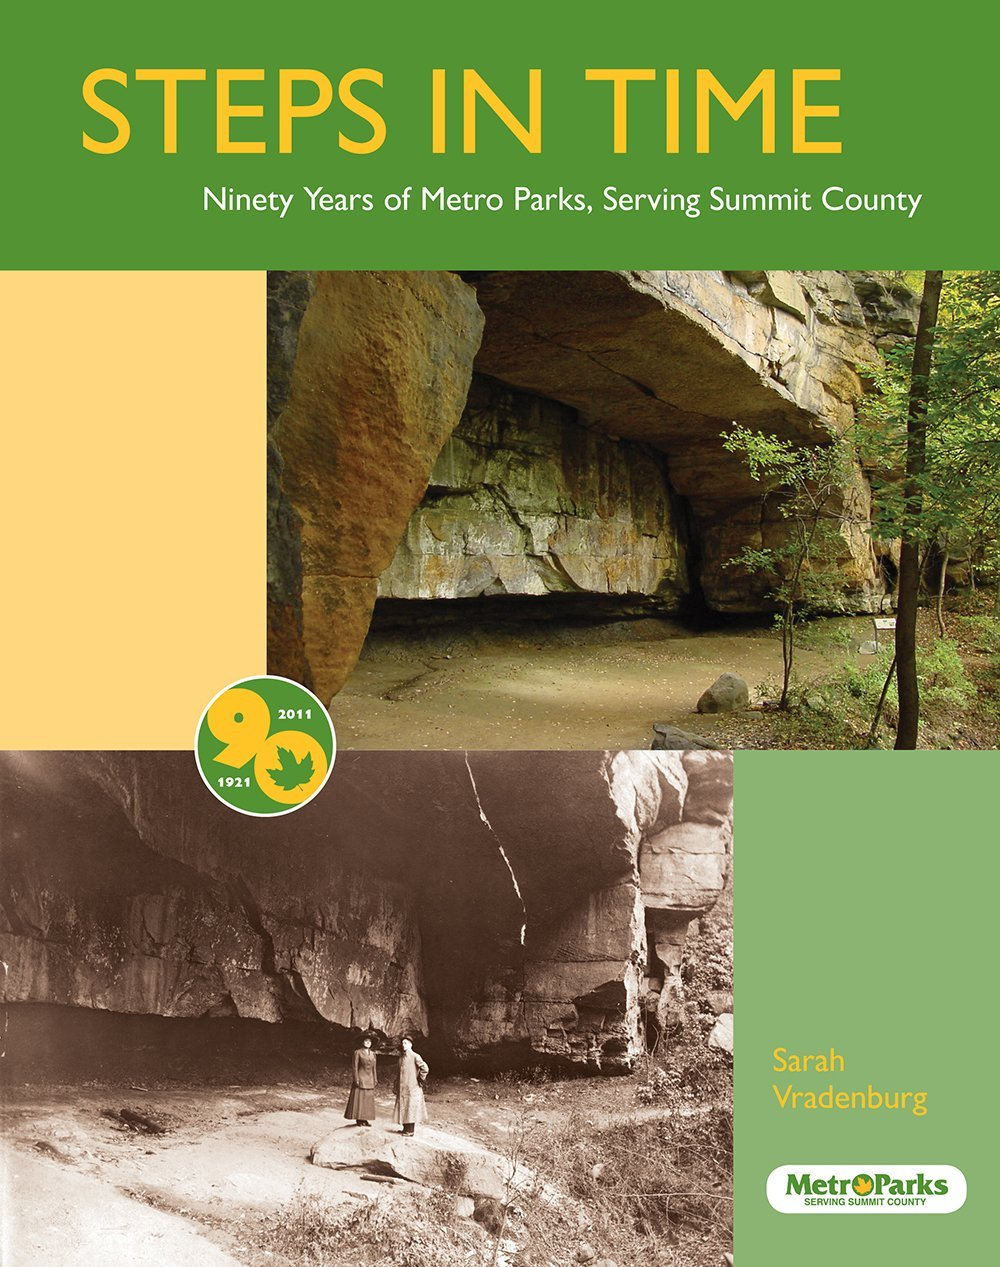 Steps in Time: Ninety Years of Metro Parks, Serving Summit County